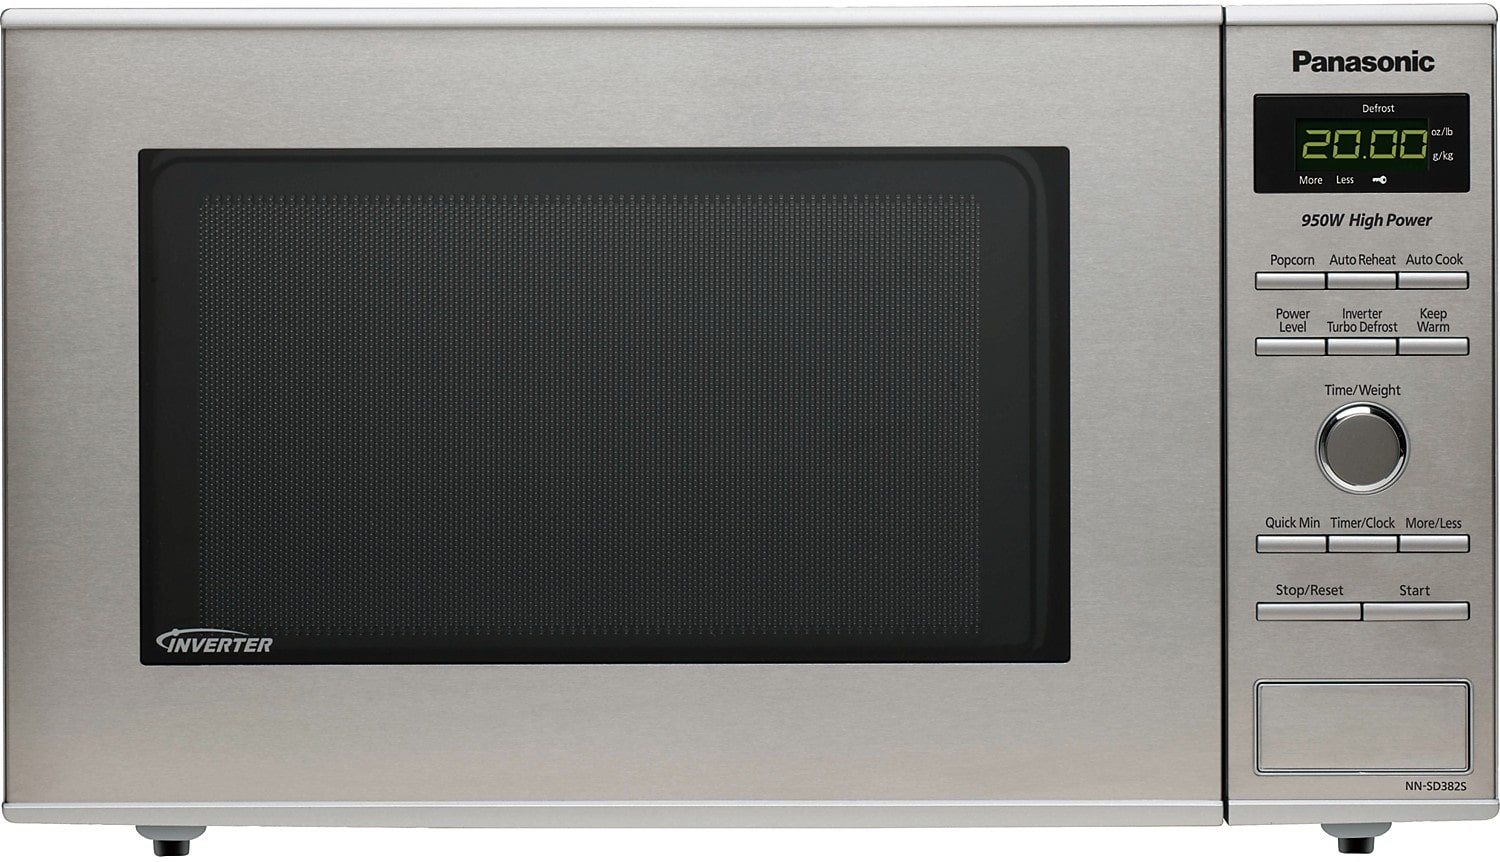 Cooking Products - Panasonic 0.8 Cu. Ft. Countertop Microwave Oven – Stainless Steel